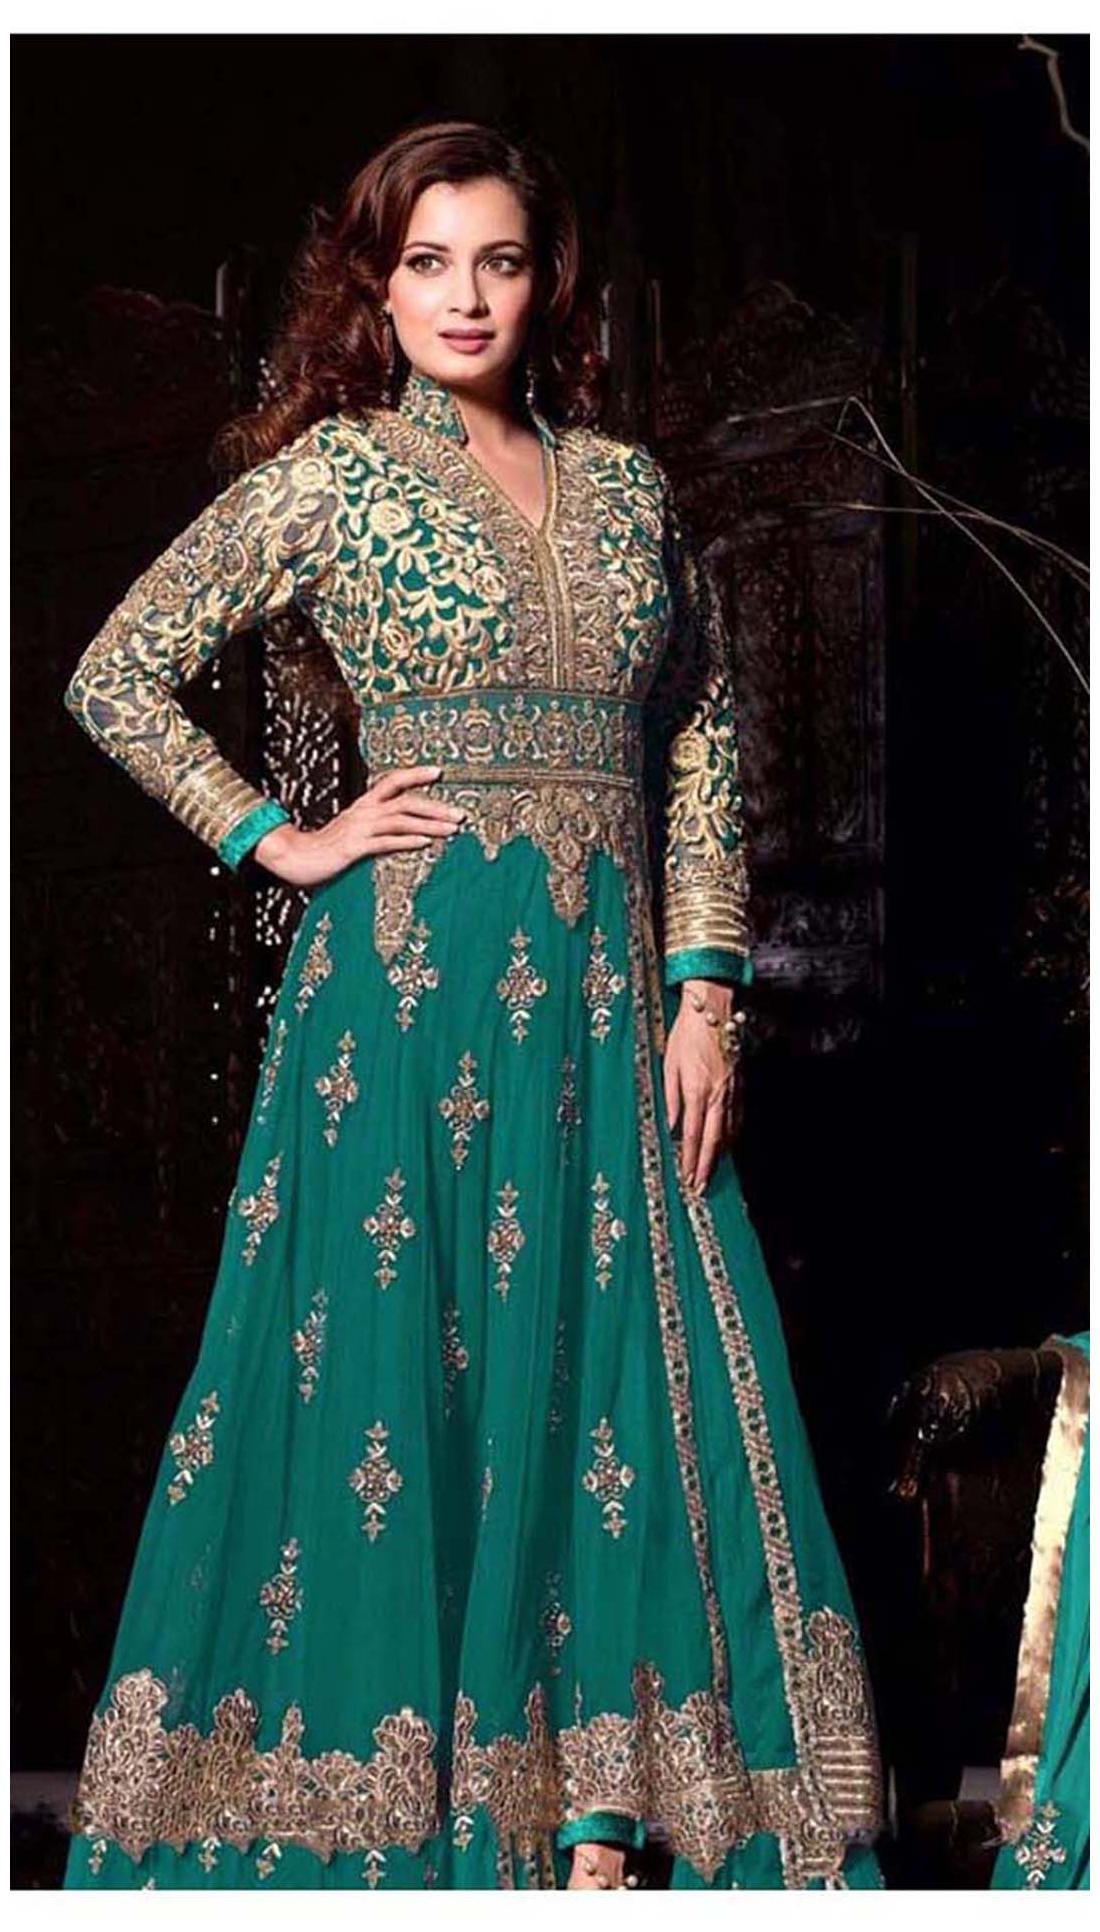 d8f0380e4 https   assetscdn1.paytm.com images catalog product . Jiya Net Printed Dress  Material - Green